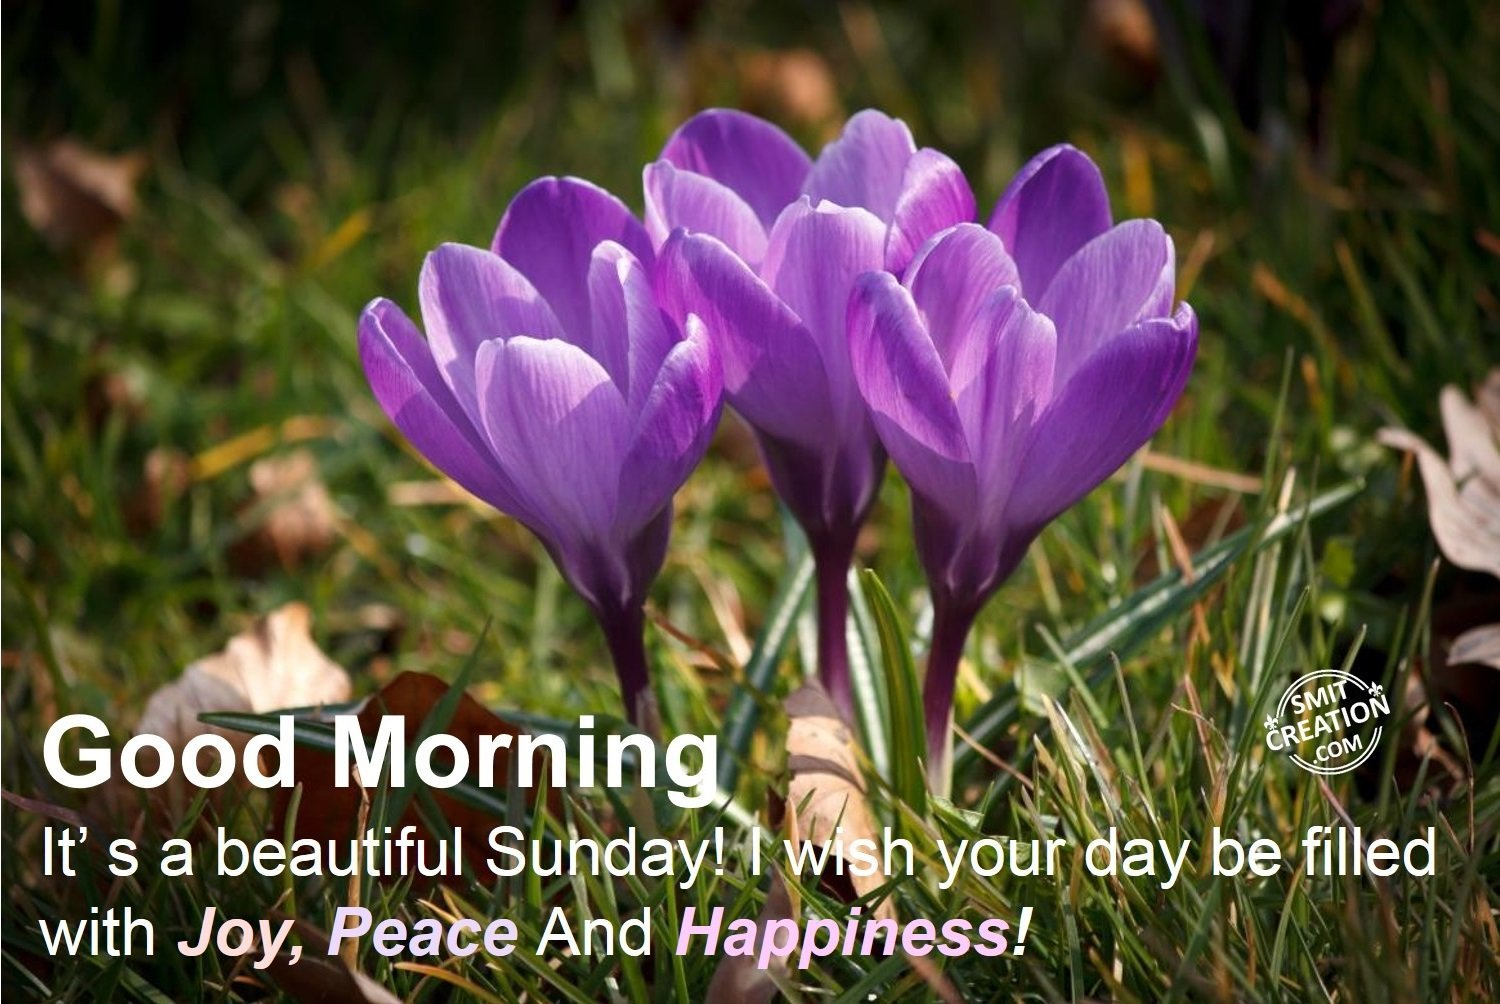 Good morning flowers pictures and graphics smitcreation page 14 download image izmirmasajfo